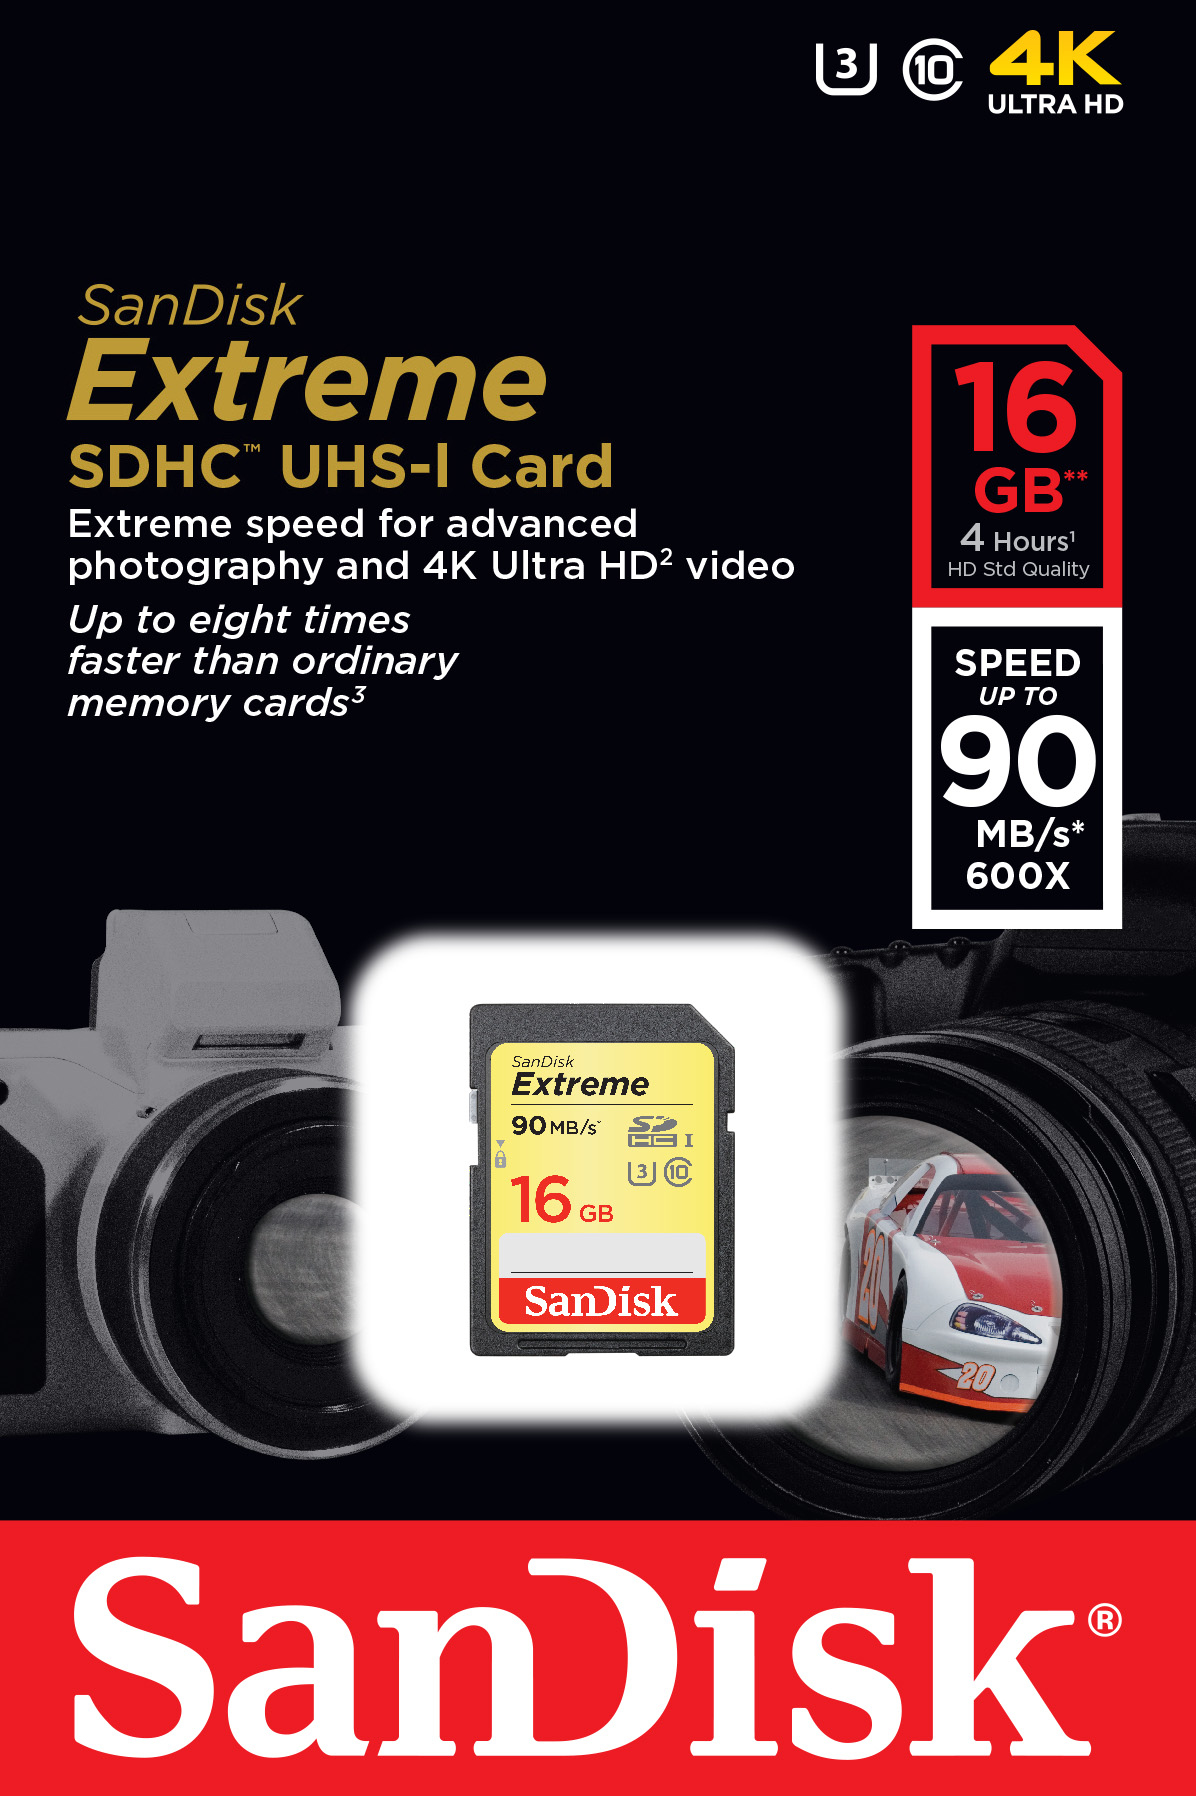 Extreme Flash memory card 16 GB (UHS Class 3, Class 10, SDHC UHS-I)